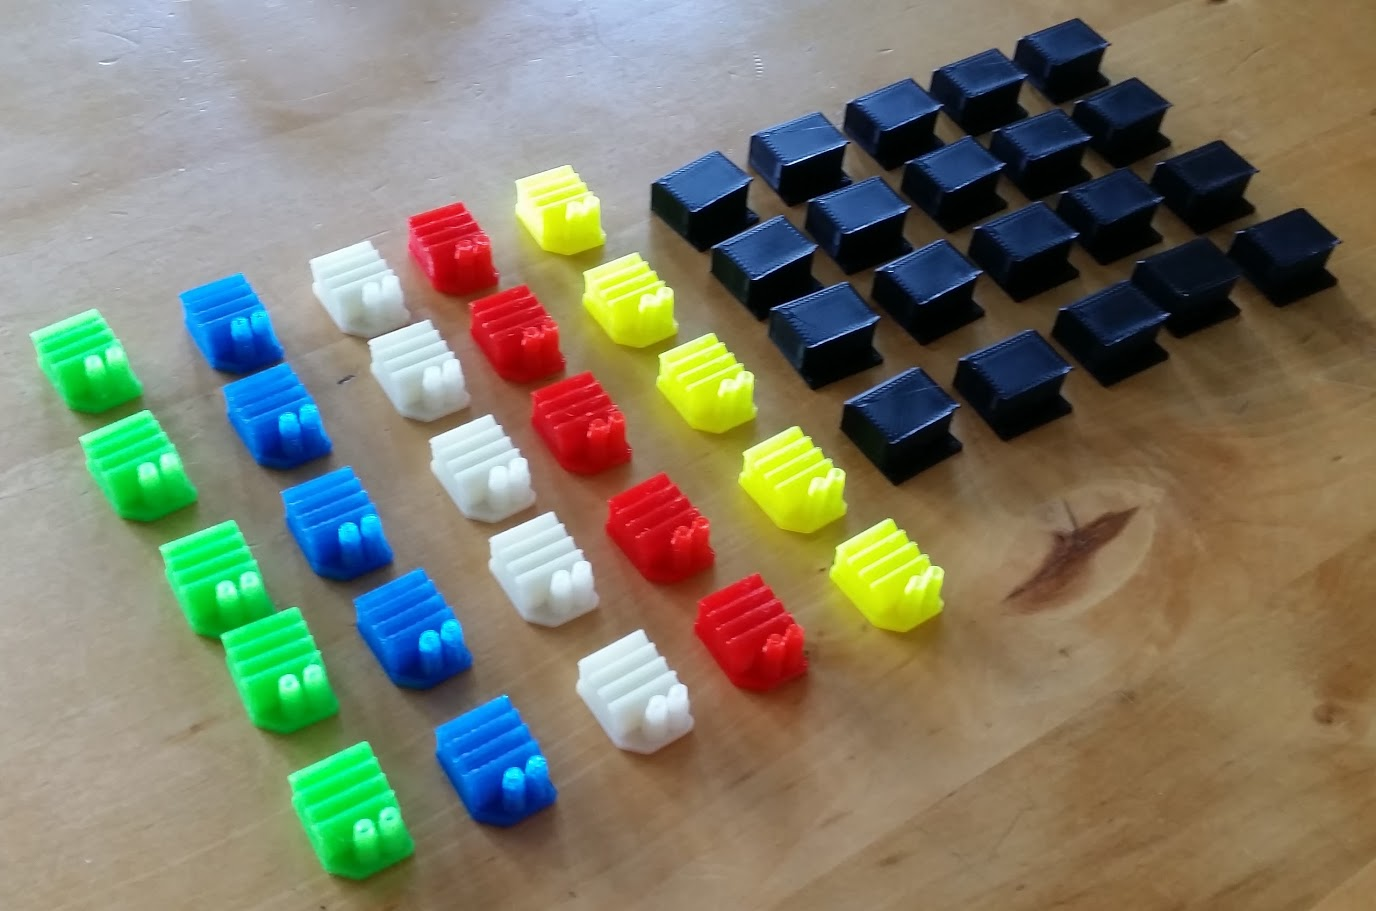 container_board_game_3d_print_007.jpg